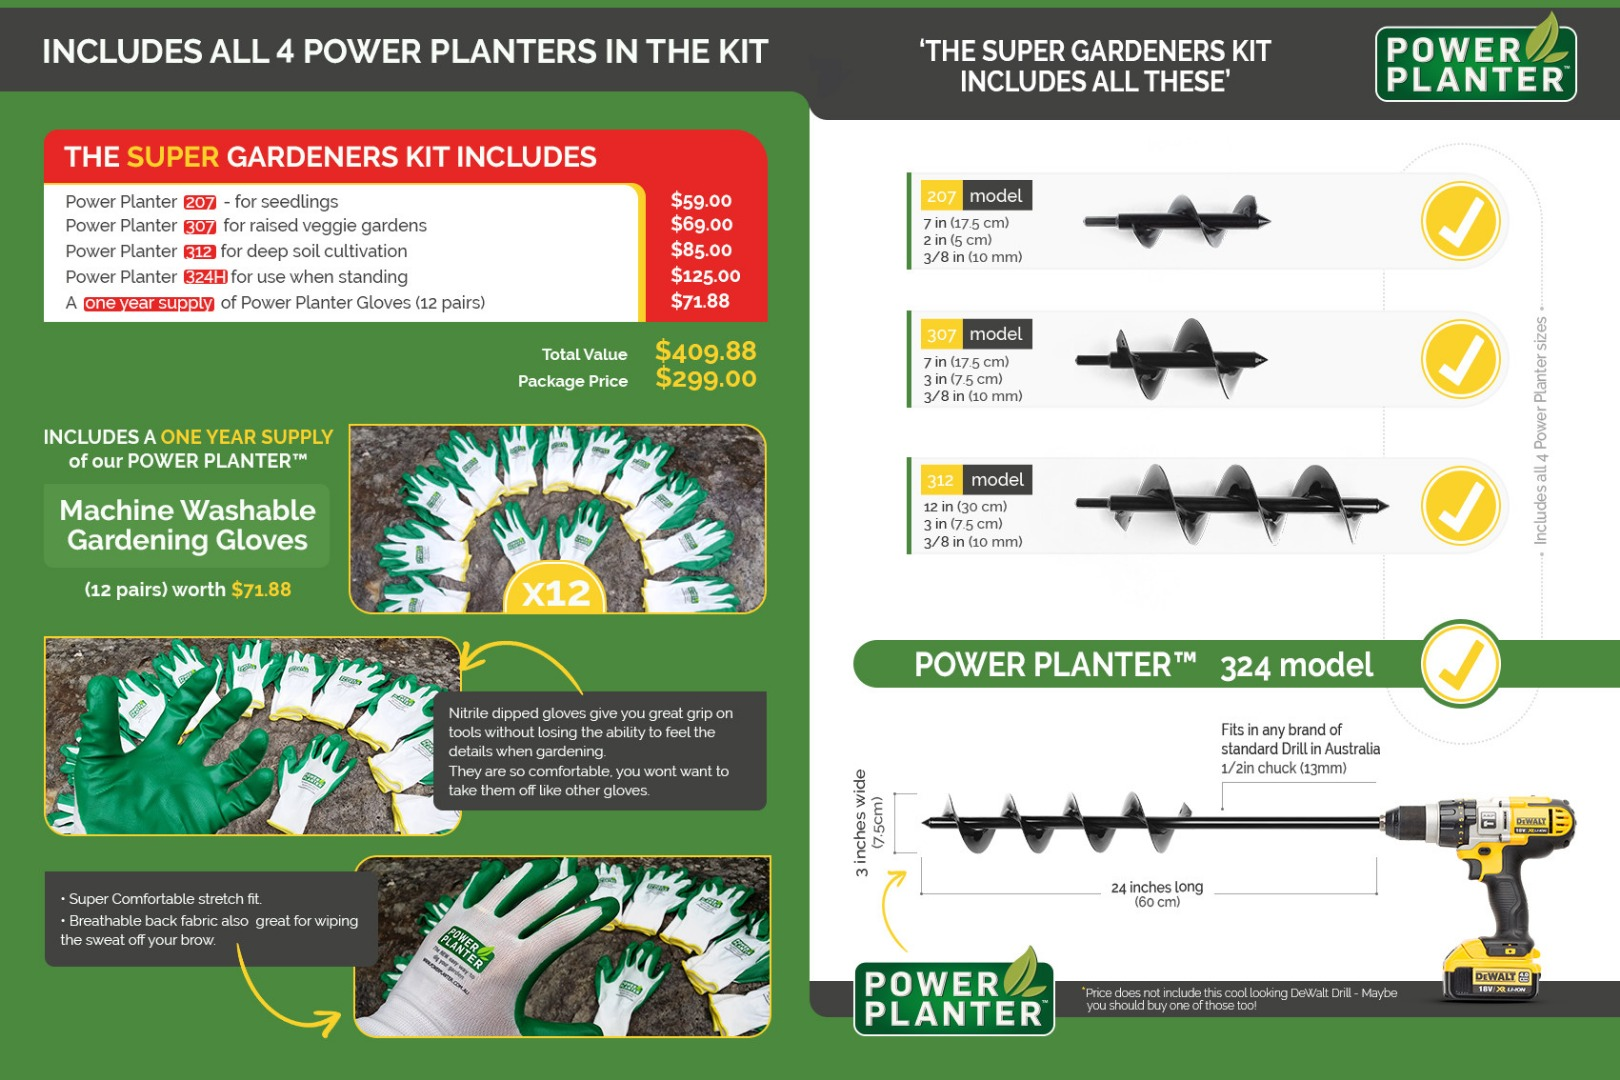 Super Gardeners Kit - includes all 4 Power Planters